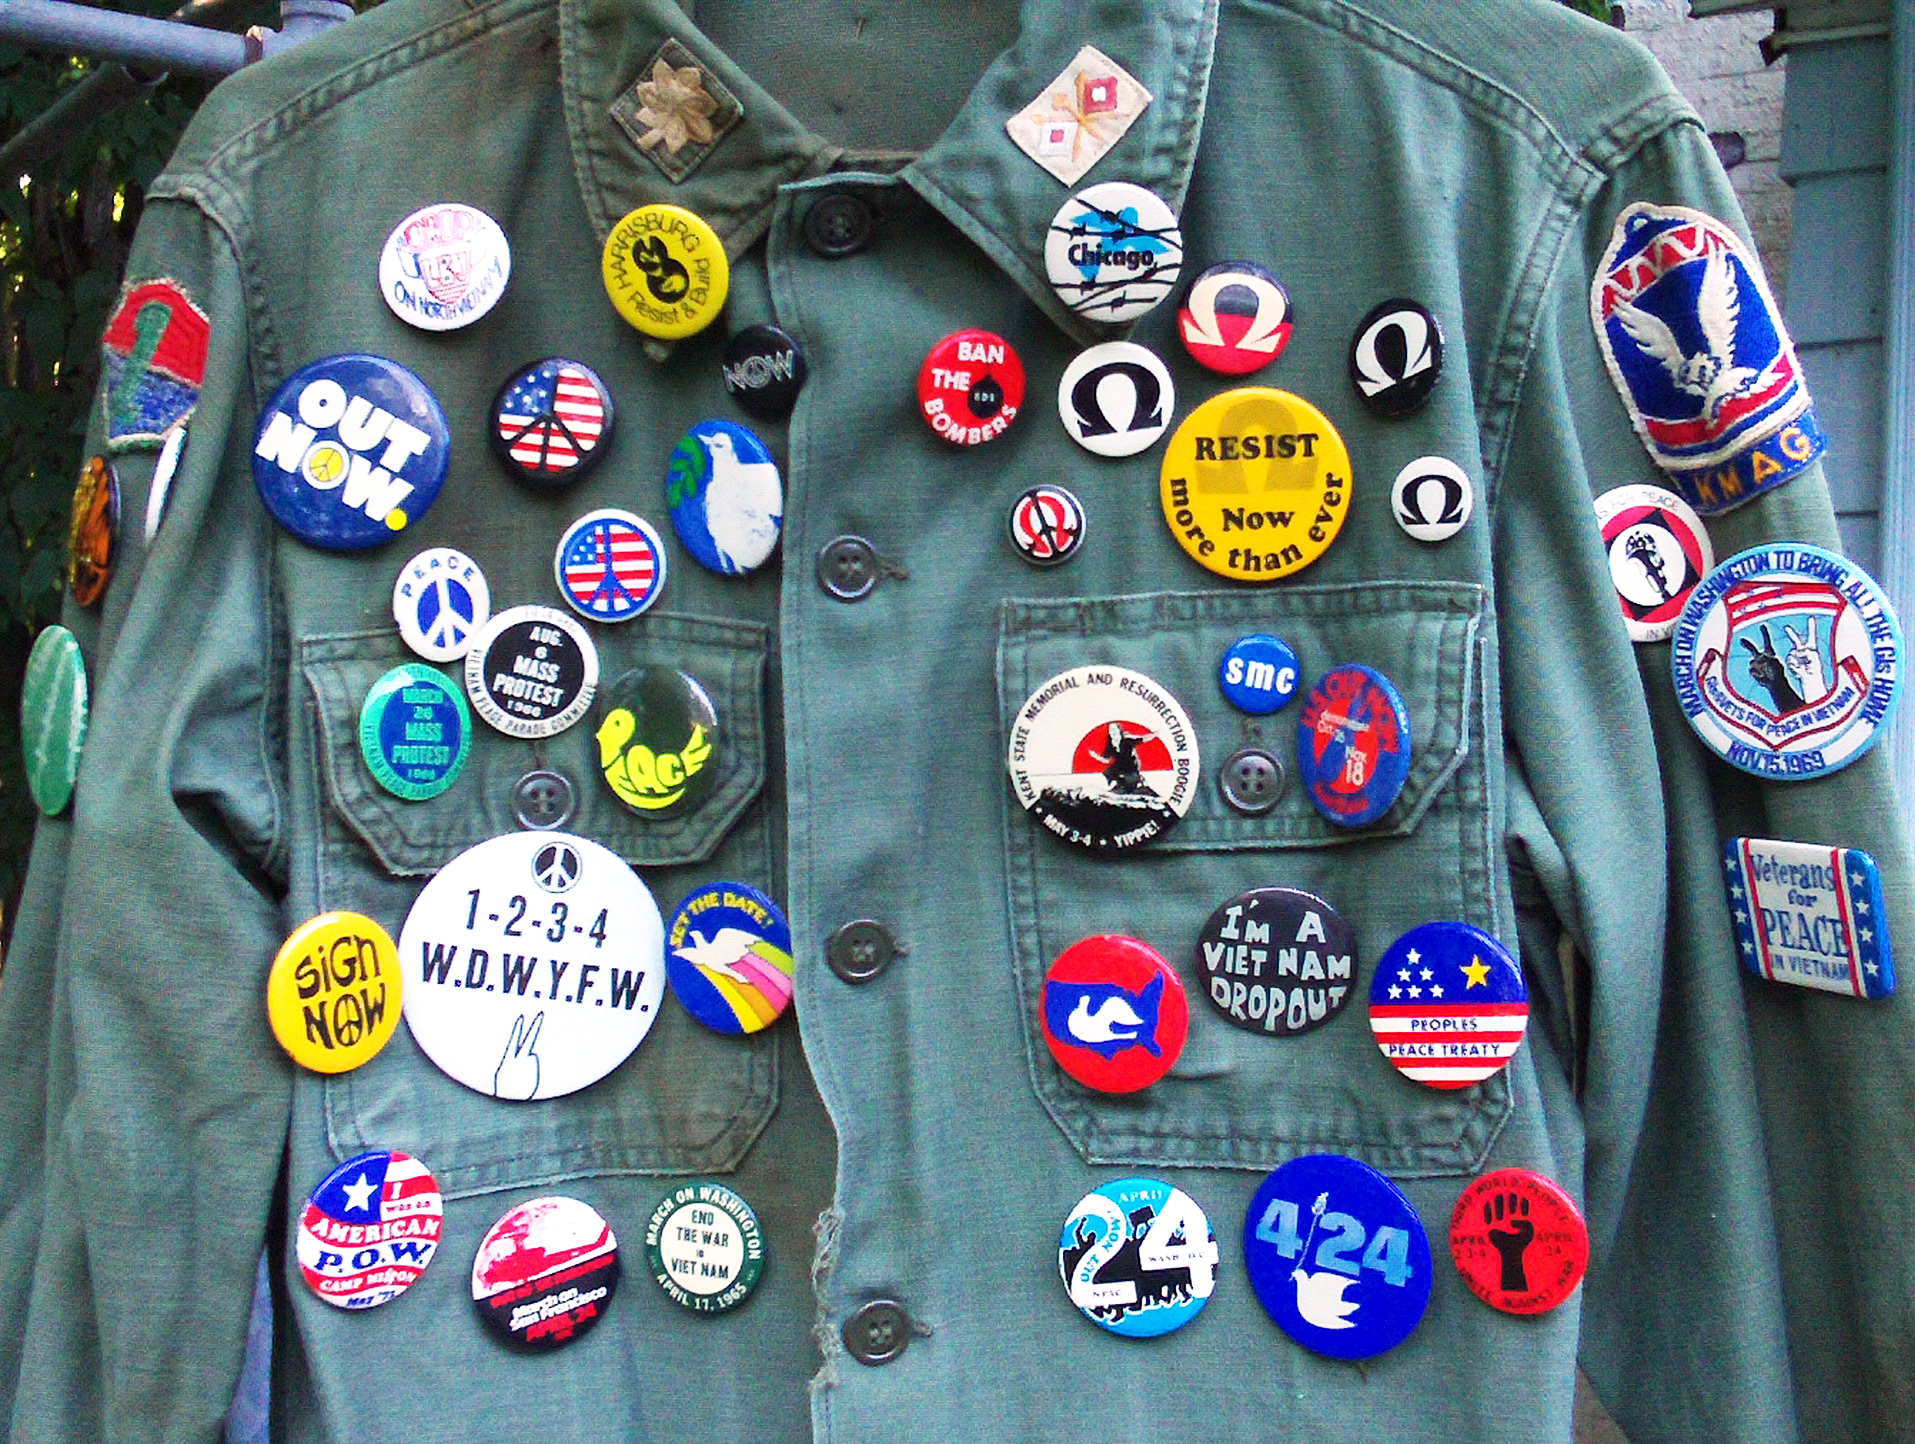 A vintage military jacket with several Vietnam-era protest buttons from Aisthorpe's collection.